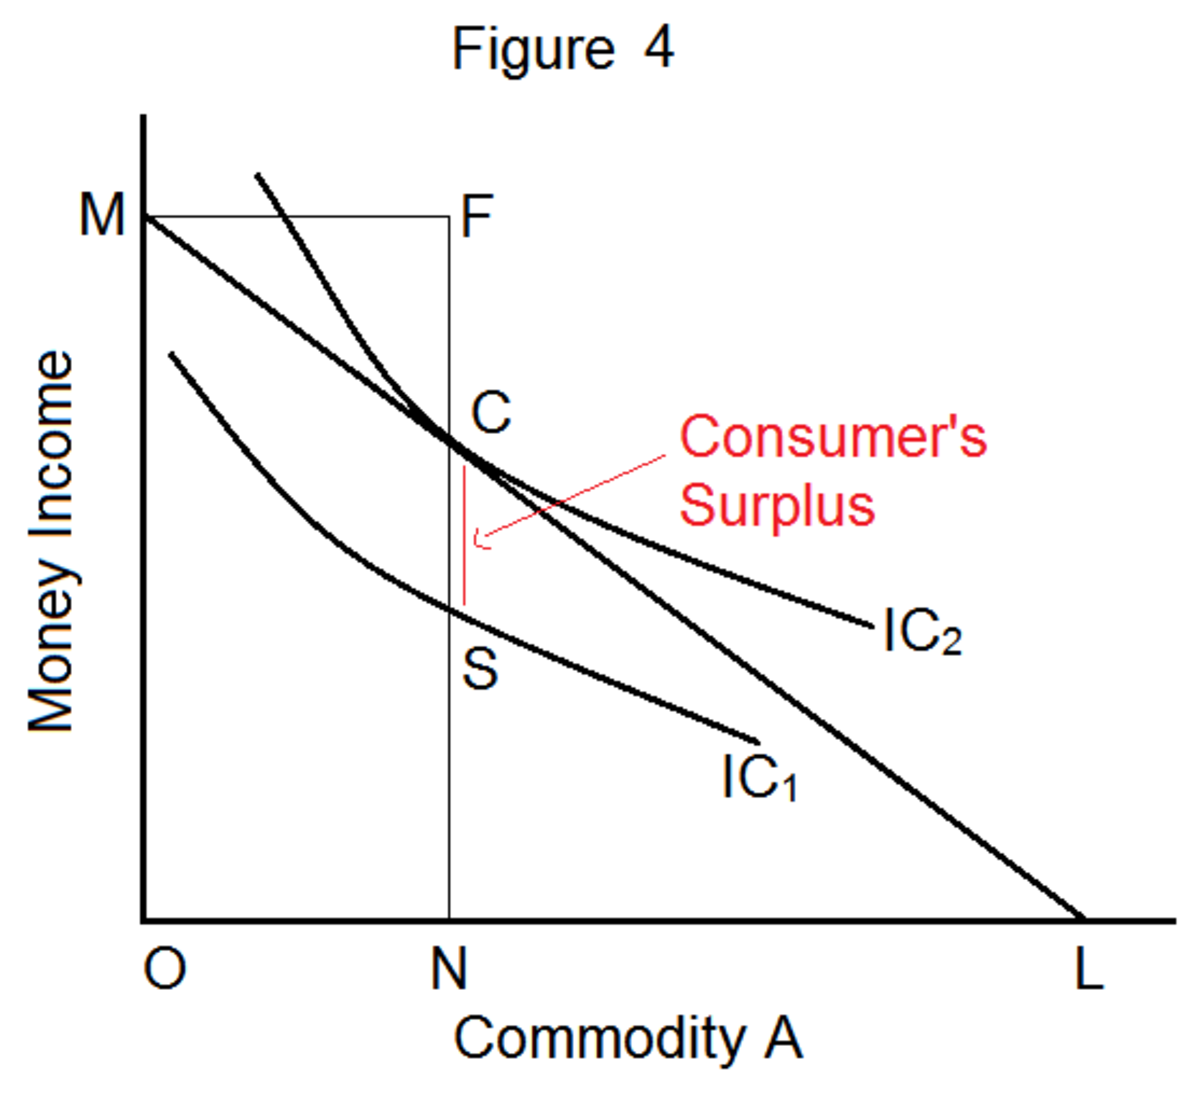 consumers-surplus-meaning-and-measurement